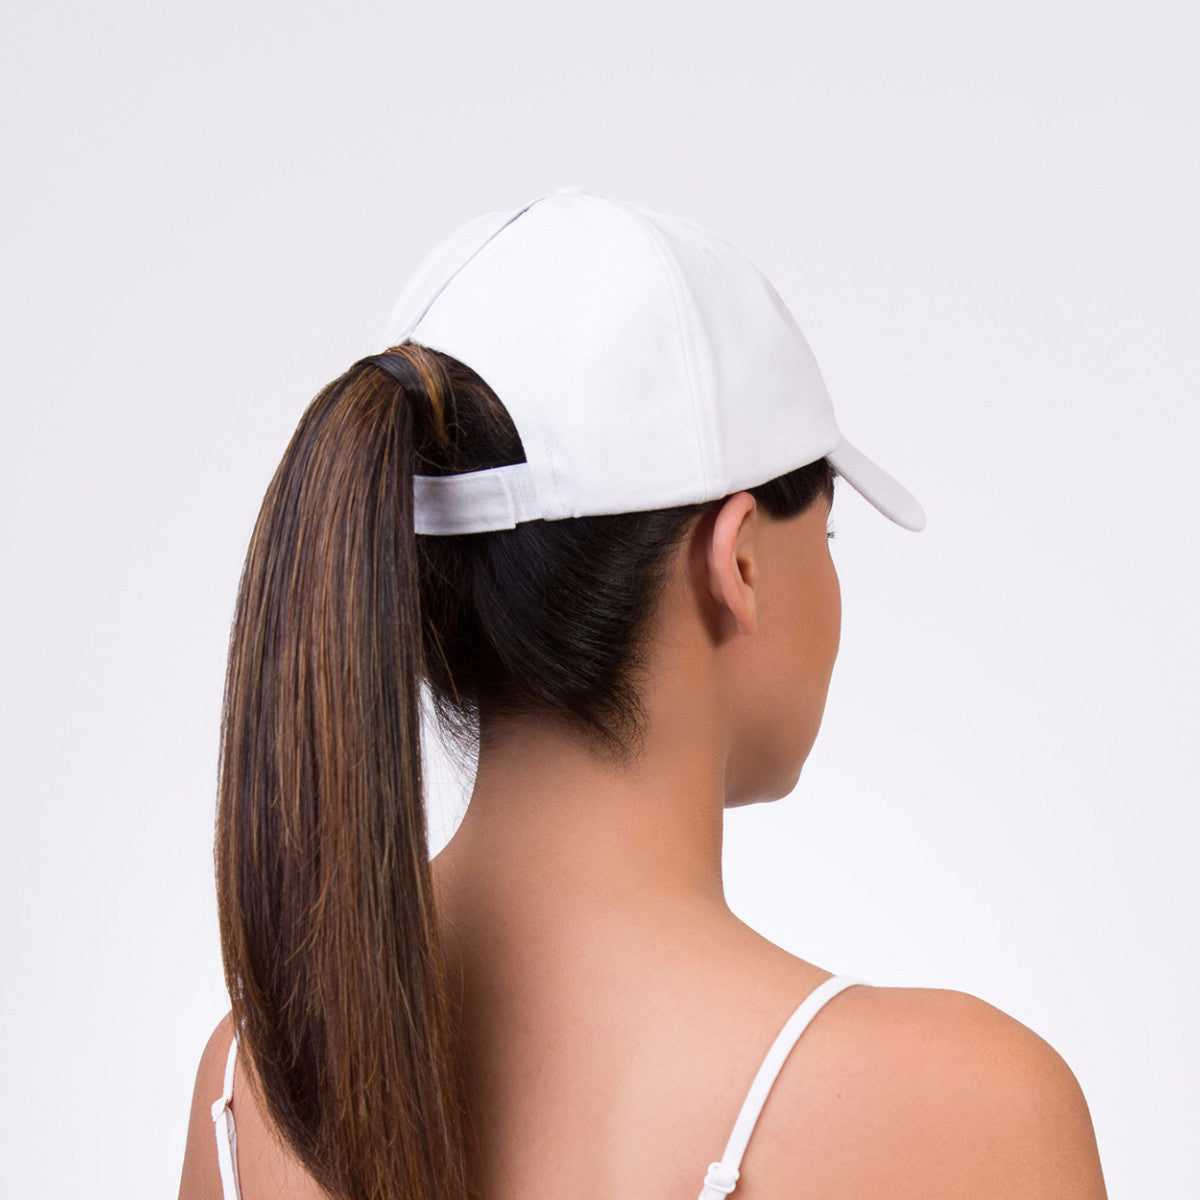 Spony Ponytail Baseball Cap - Wear it 2 Ways!! Daffodil Sprinkles b1e66250b13